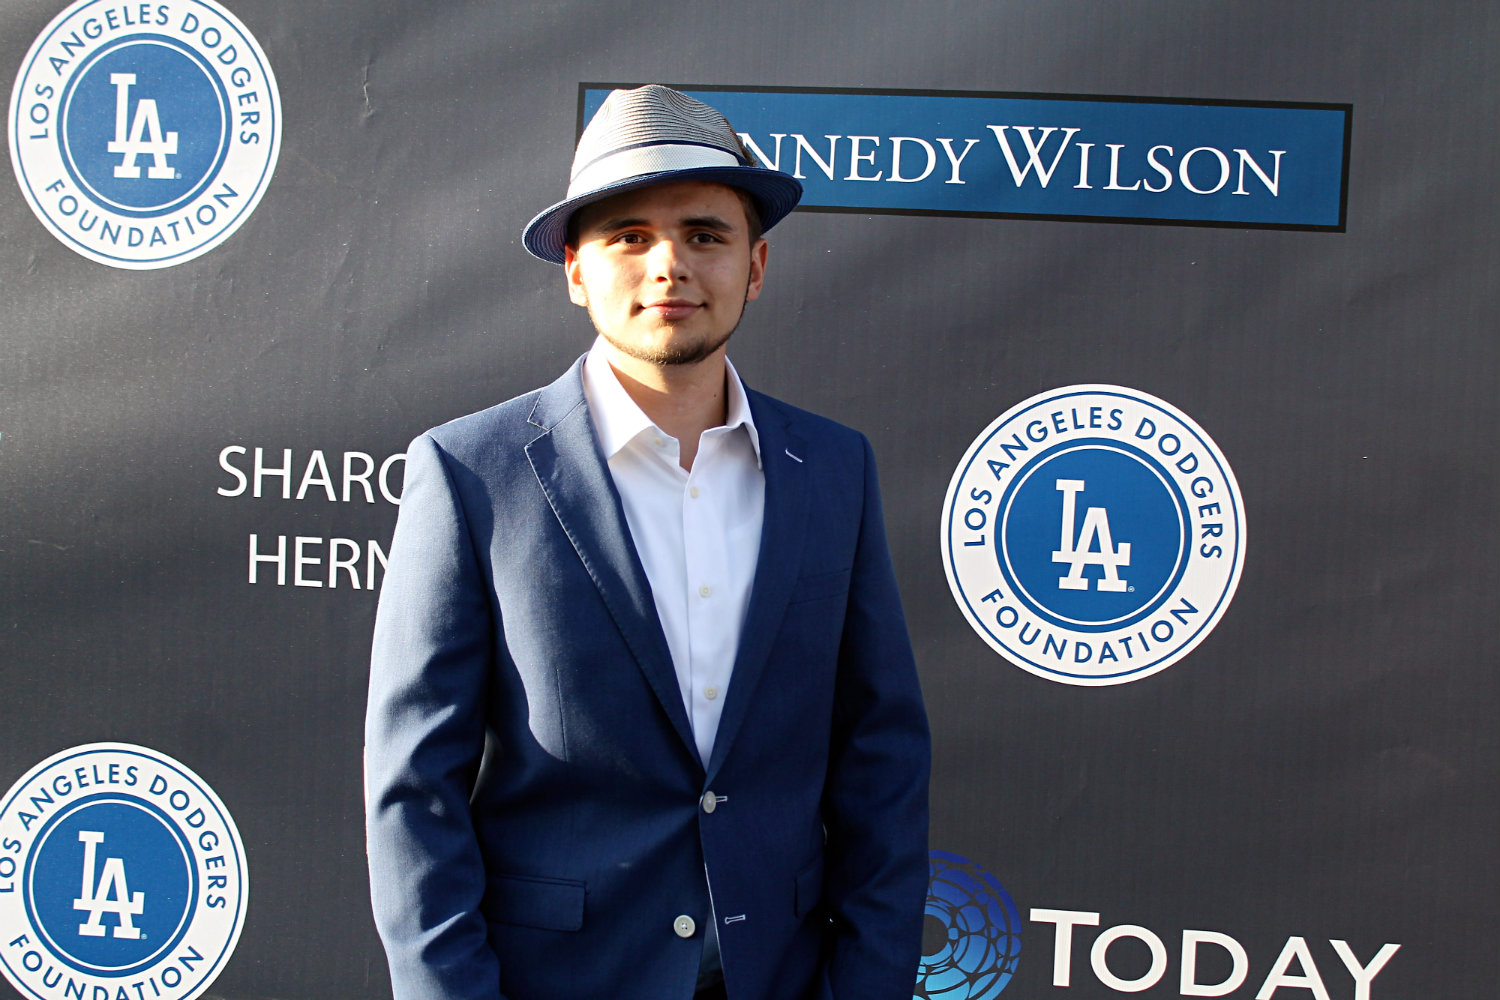 Prince Jackson, son of pop music legend Michael Jackson, arrives on the blue carpet at the Dodgers 3rd Annual Blue Diamond Gala, put on by the Los Angeles Dodgers Foundation. Photo by Dennis J. Freeman/News4usonline.com